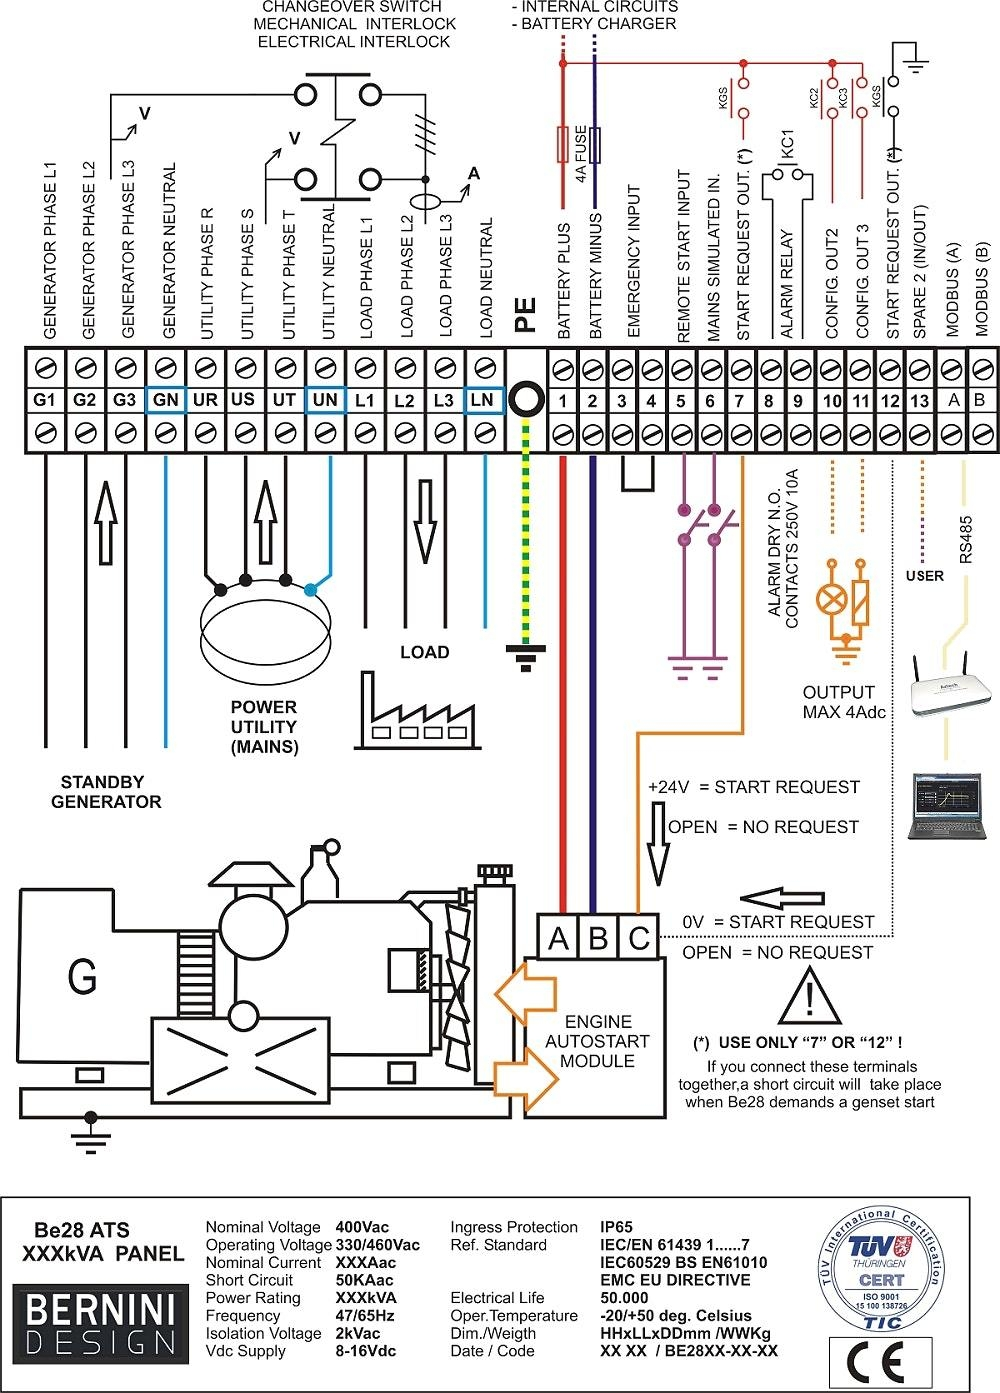 medium resolution of generac ats wiring diagram an transfer switch wiring diagram collection generac automatic transfer switch wiring